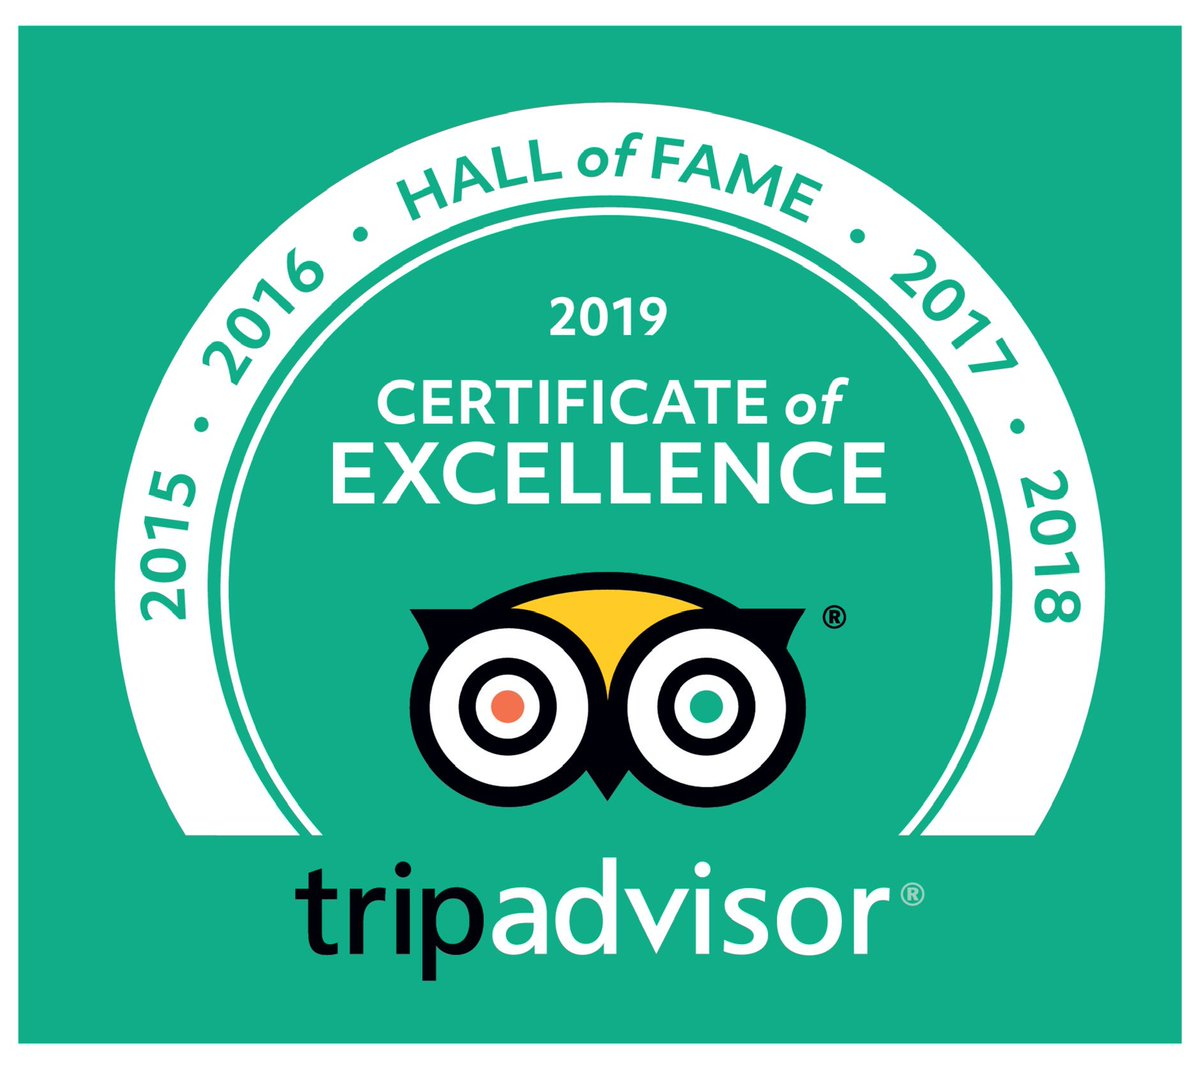 test Twitter Media - Proud to receive the #TripAdvisor Certificate of Excellence for the 5th year. Thanks to all our customers for taking the time to review us. A big shout out to our fabulous, hard working team who helped us achieve this 👏 #smallbusinessuk #kent #folkestone #hythe #sandgate #tapas https://t.co/kPAoOv5zvm